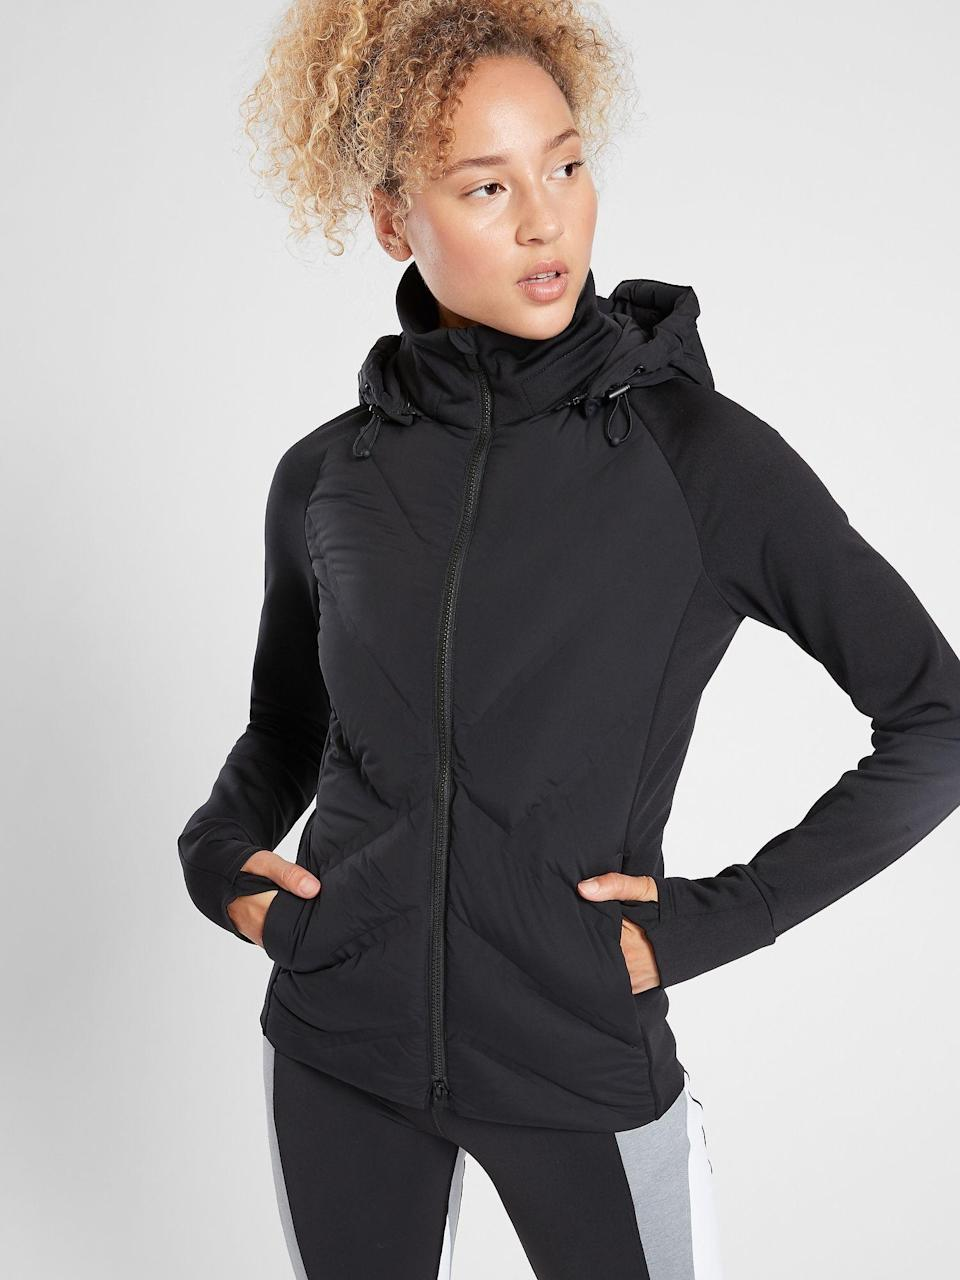 """<p><strong>Athleta</strong></p><p>athleta.gap.com</p><p><strong>$178.00</strong></p><p><a href=""""https://go.redirectingat.com?id=74968X1596630&url=https%3A%2F%2Fathleta.gap.com%2Fbrowse%2Fproduct.do%3Fpid%3D486238002%26vid%3D1%26tid%3Datpl000007%26kwid%3D1%26ap%3D7%26gclid%3DCjwKCAjwh7H7BRBBEiwAPXjadqaGnnhW10ubbbx_BLLmNWms9kurX67cm-bhIFb8csOhtFL1Akwl6BoCaigQAvD_BwE%26gclsrc%3Daw.ds%26ak_t%3D4BFDEC4B968C8E785114FA23440BDCDF173BFB5F44550000EBC46C5F70B85266%23pdp-page-content&sref=https%3A%2F%2Fwww.prevention.com%2Fbeauty%2Fstyle%2Fg29473259%2Fbest-winter-coats%2F"""" rel=""""nofollow noopener"""" target=""""_blank"""" data-ylk=""""slk:Shop Now"""" class=""""link rapid-noclick-resp"""">Shop Now</a></p><p>At a fantastic price, Athleta's Inlet Jacket is made for high-impact workouts in cold climates (meaning it can totally withstand early morning walks with the dog and school drop-off). The exterior is made of recycled nylon and spandex, while the<strong> interior boasts 800-fill FeatherDry down insulation</strong>. It's water-repellant, made to resist snags and tears, and features a high collar and removable hood.</p>"""